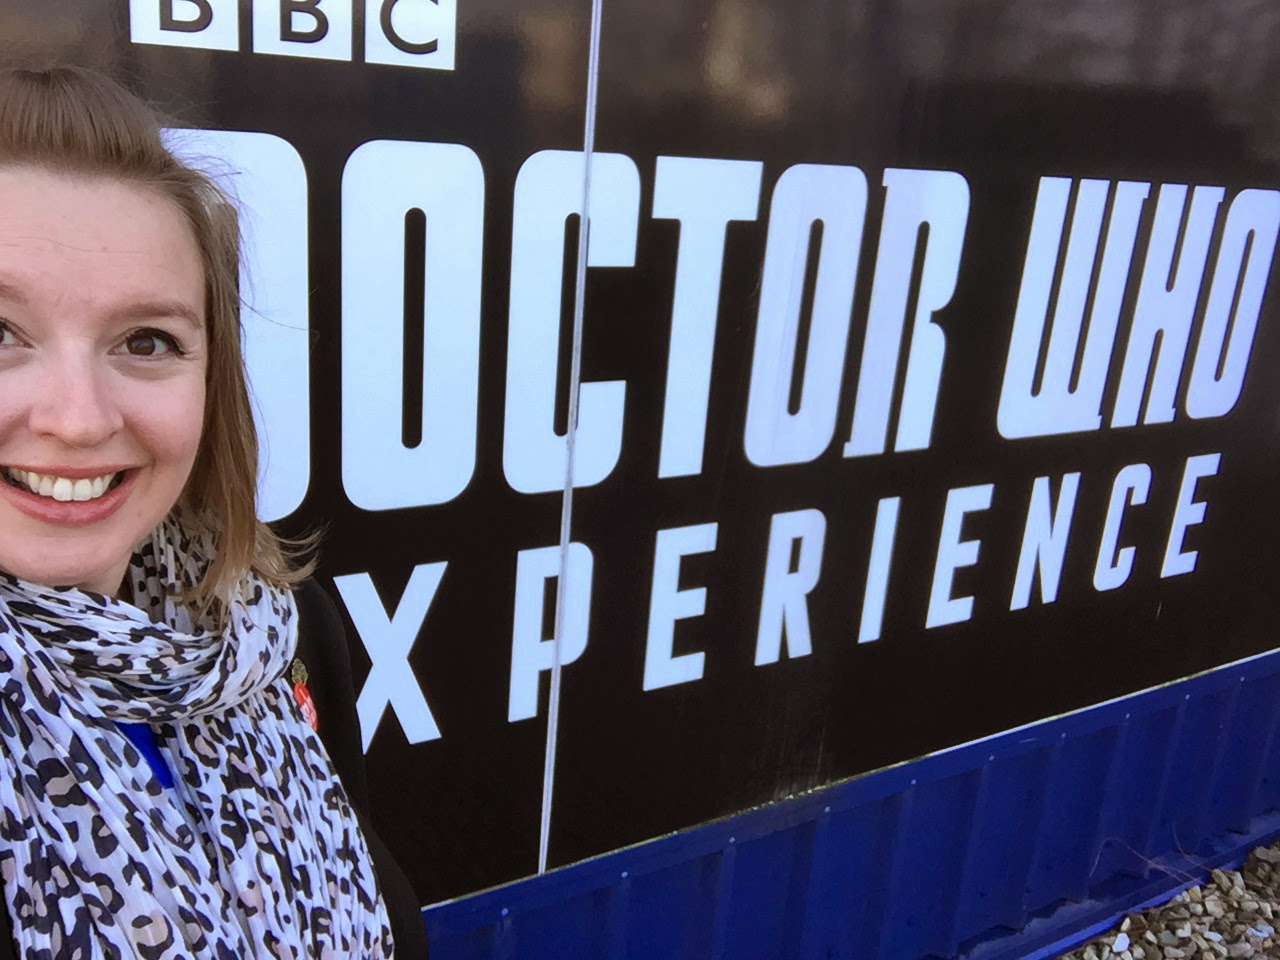 Doctor Who Experience Cardiff Bay 2015